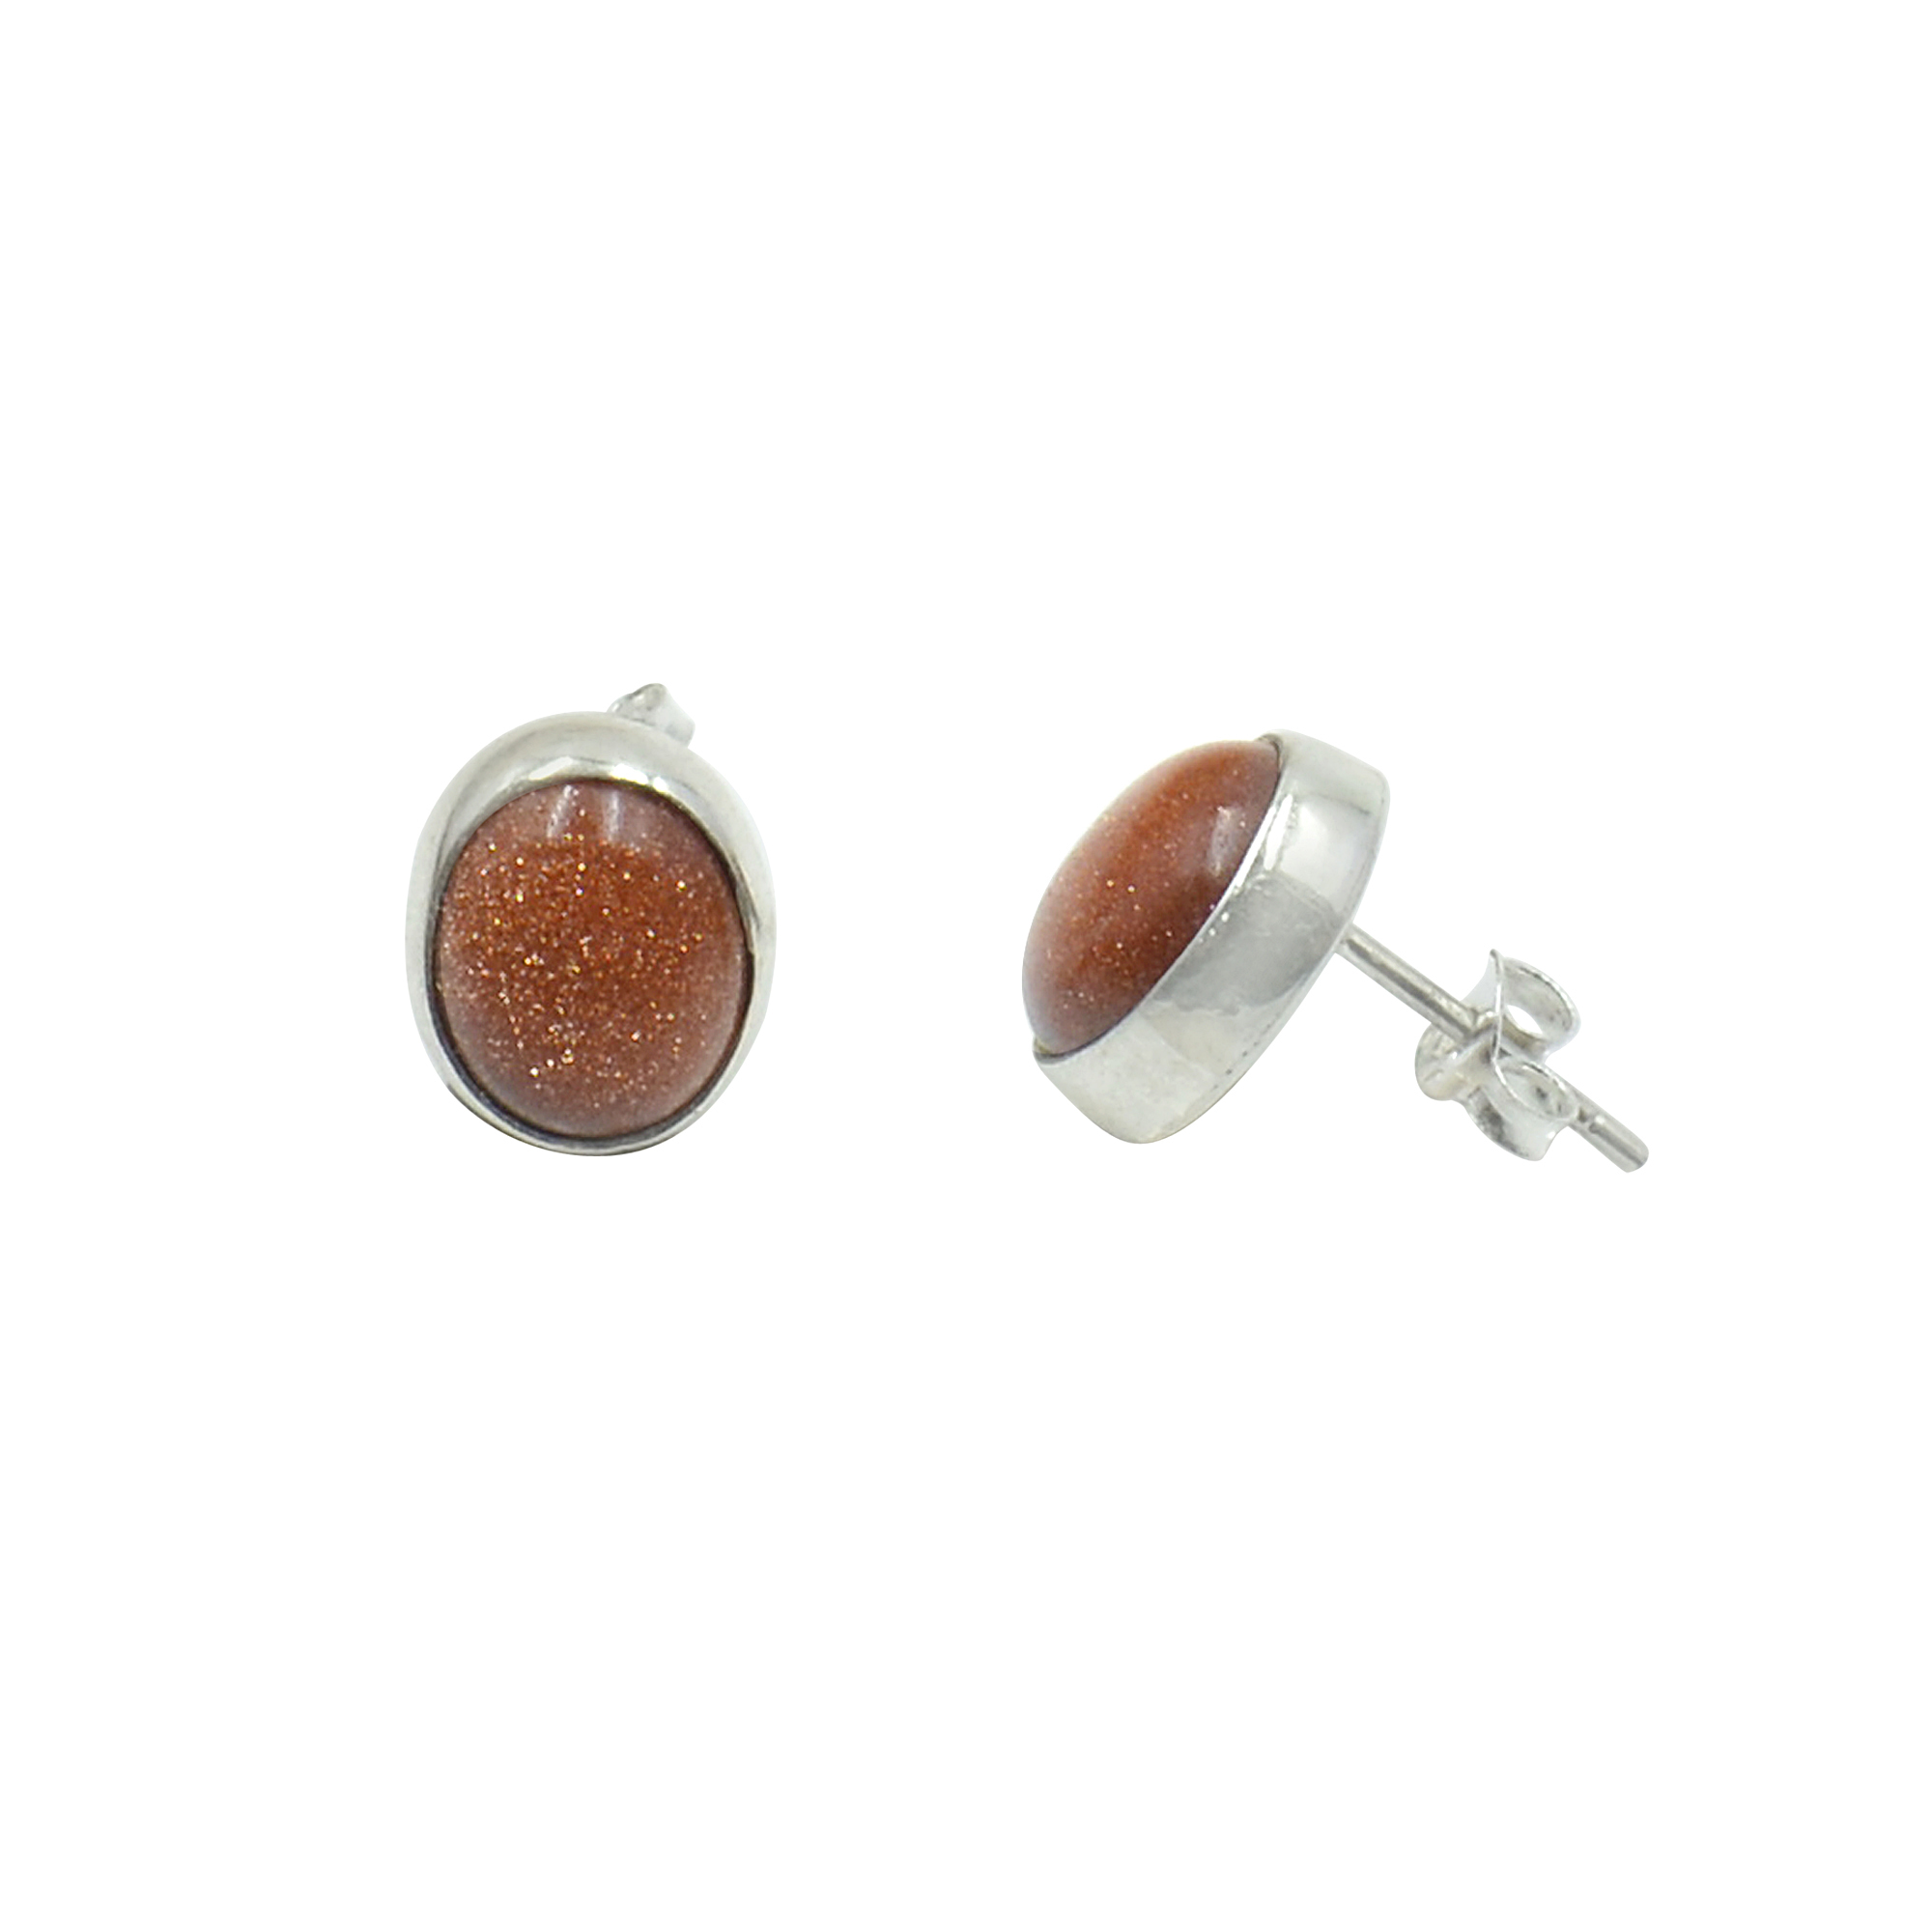 Silvesto India 925 Sterling Silver Natural Sandstone Oval Shape Gemstone Stud Earring For Women